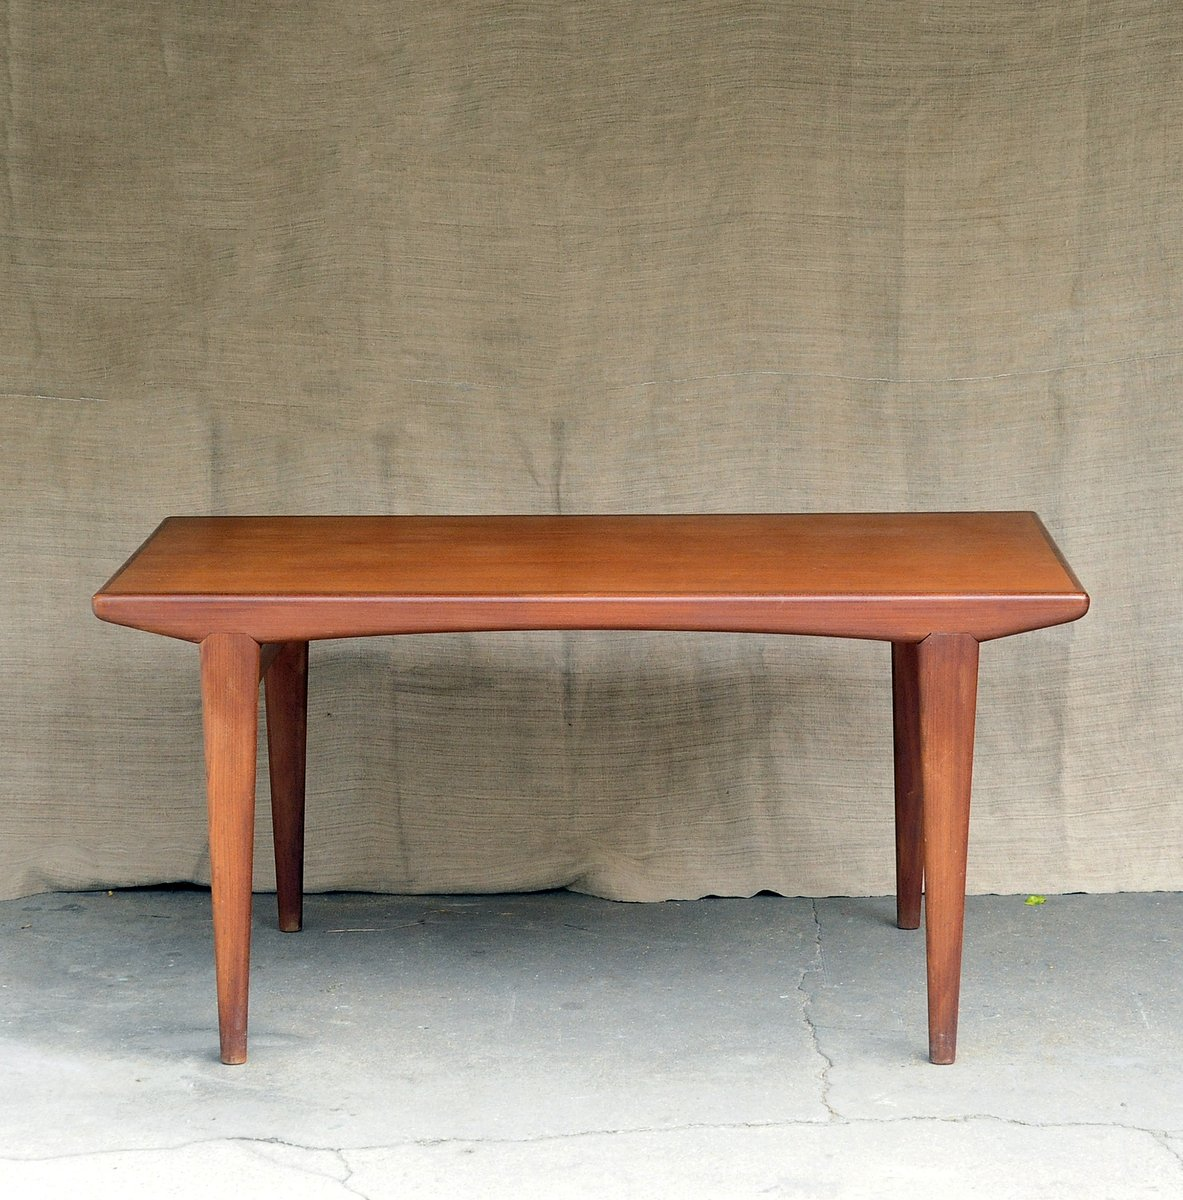 Vintage Teak Dining Table for sale at Pamono : vintage teak dining table 1 from www.pamono.com size 1183 x 1200 jpeg 165kB